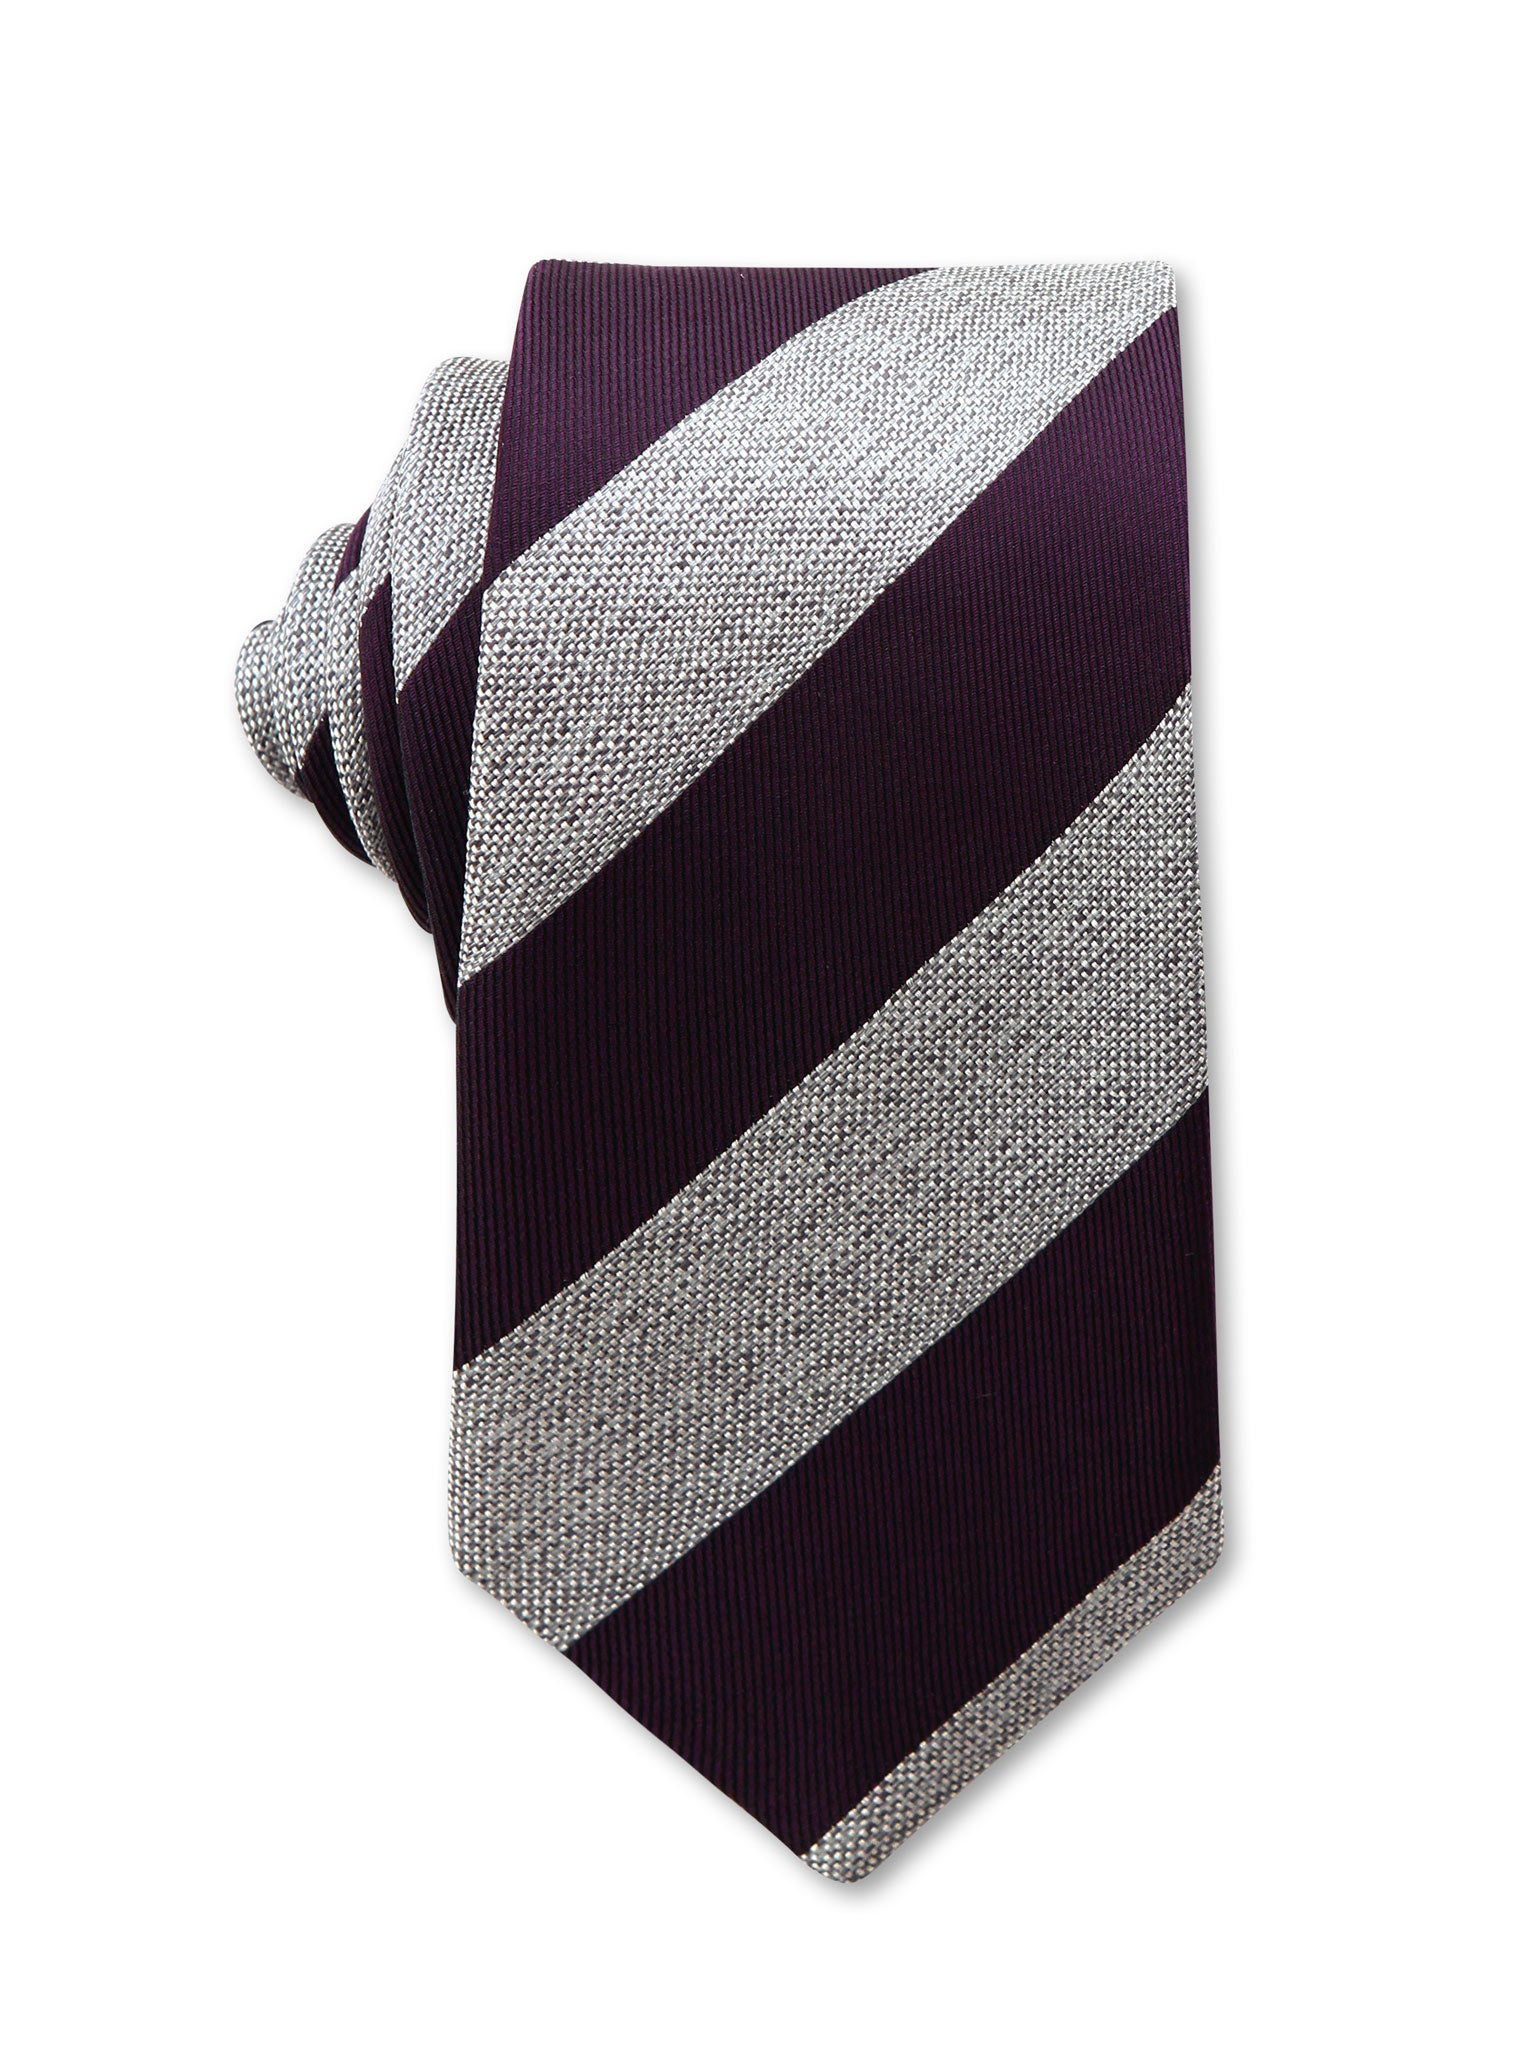 Grey Purple Diagonal Stripe 8cm Italian Silk Tie Made in Australia